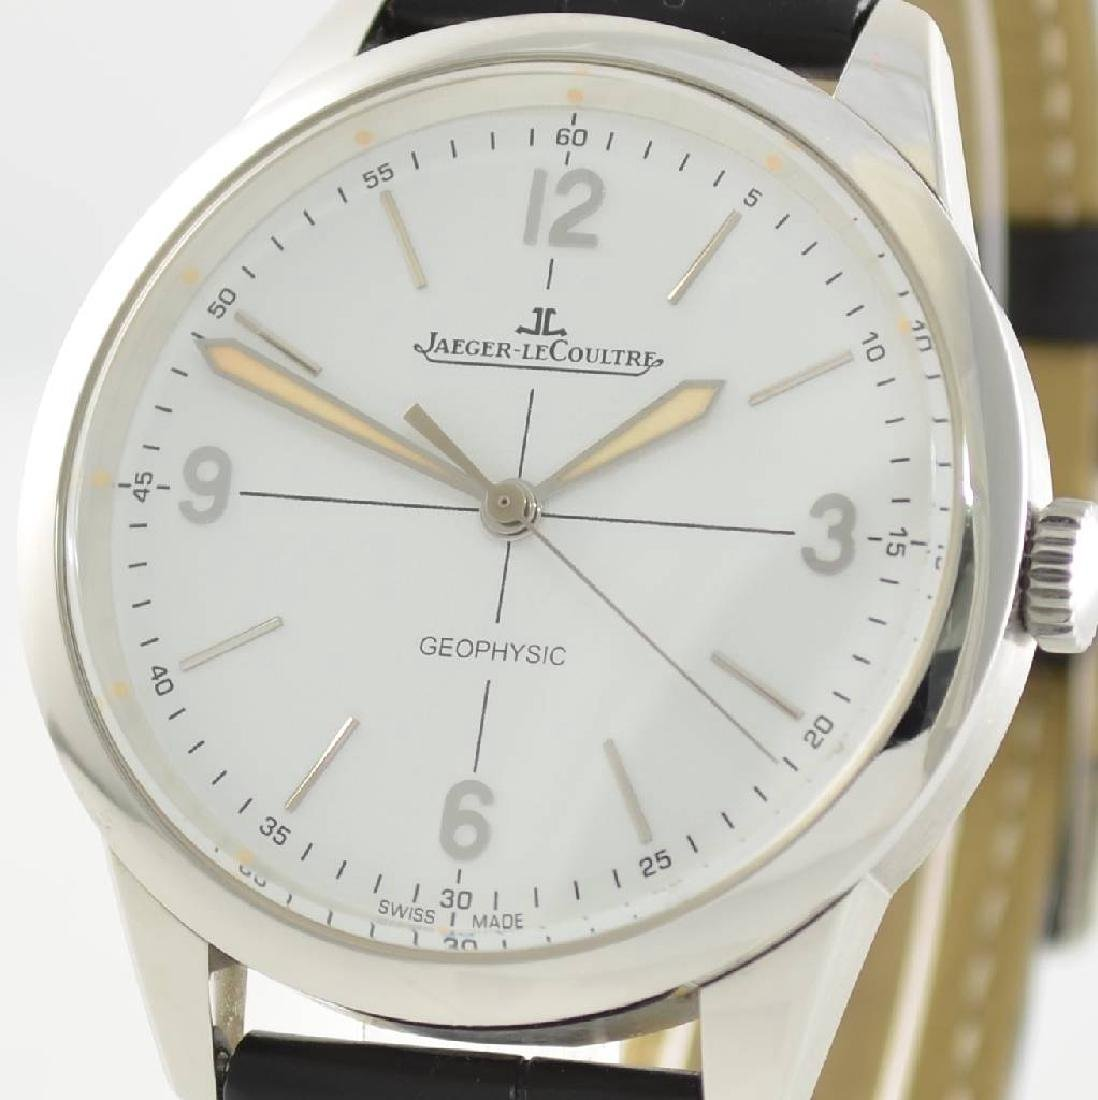 Jaeger-LeCoultre Geophysic 1958 limited gents - 4